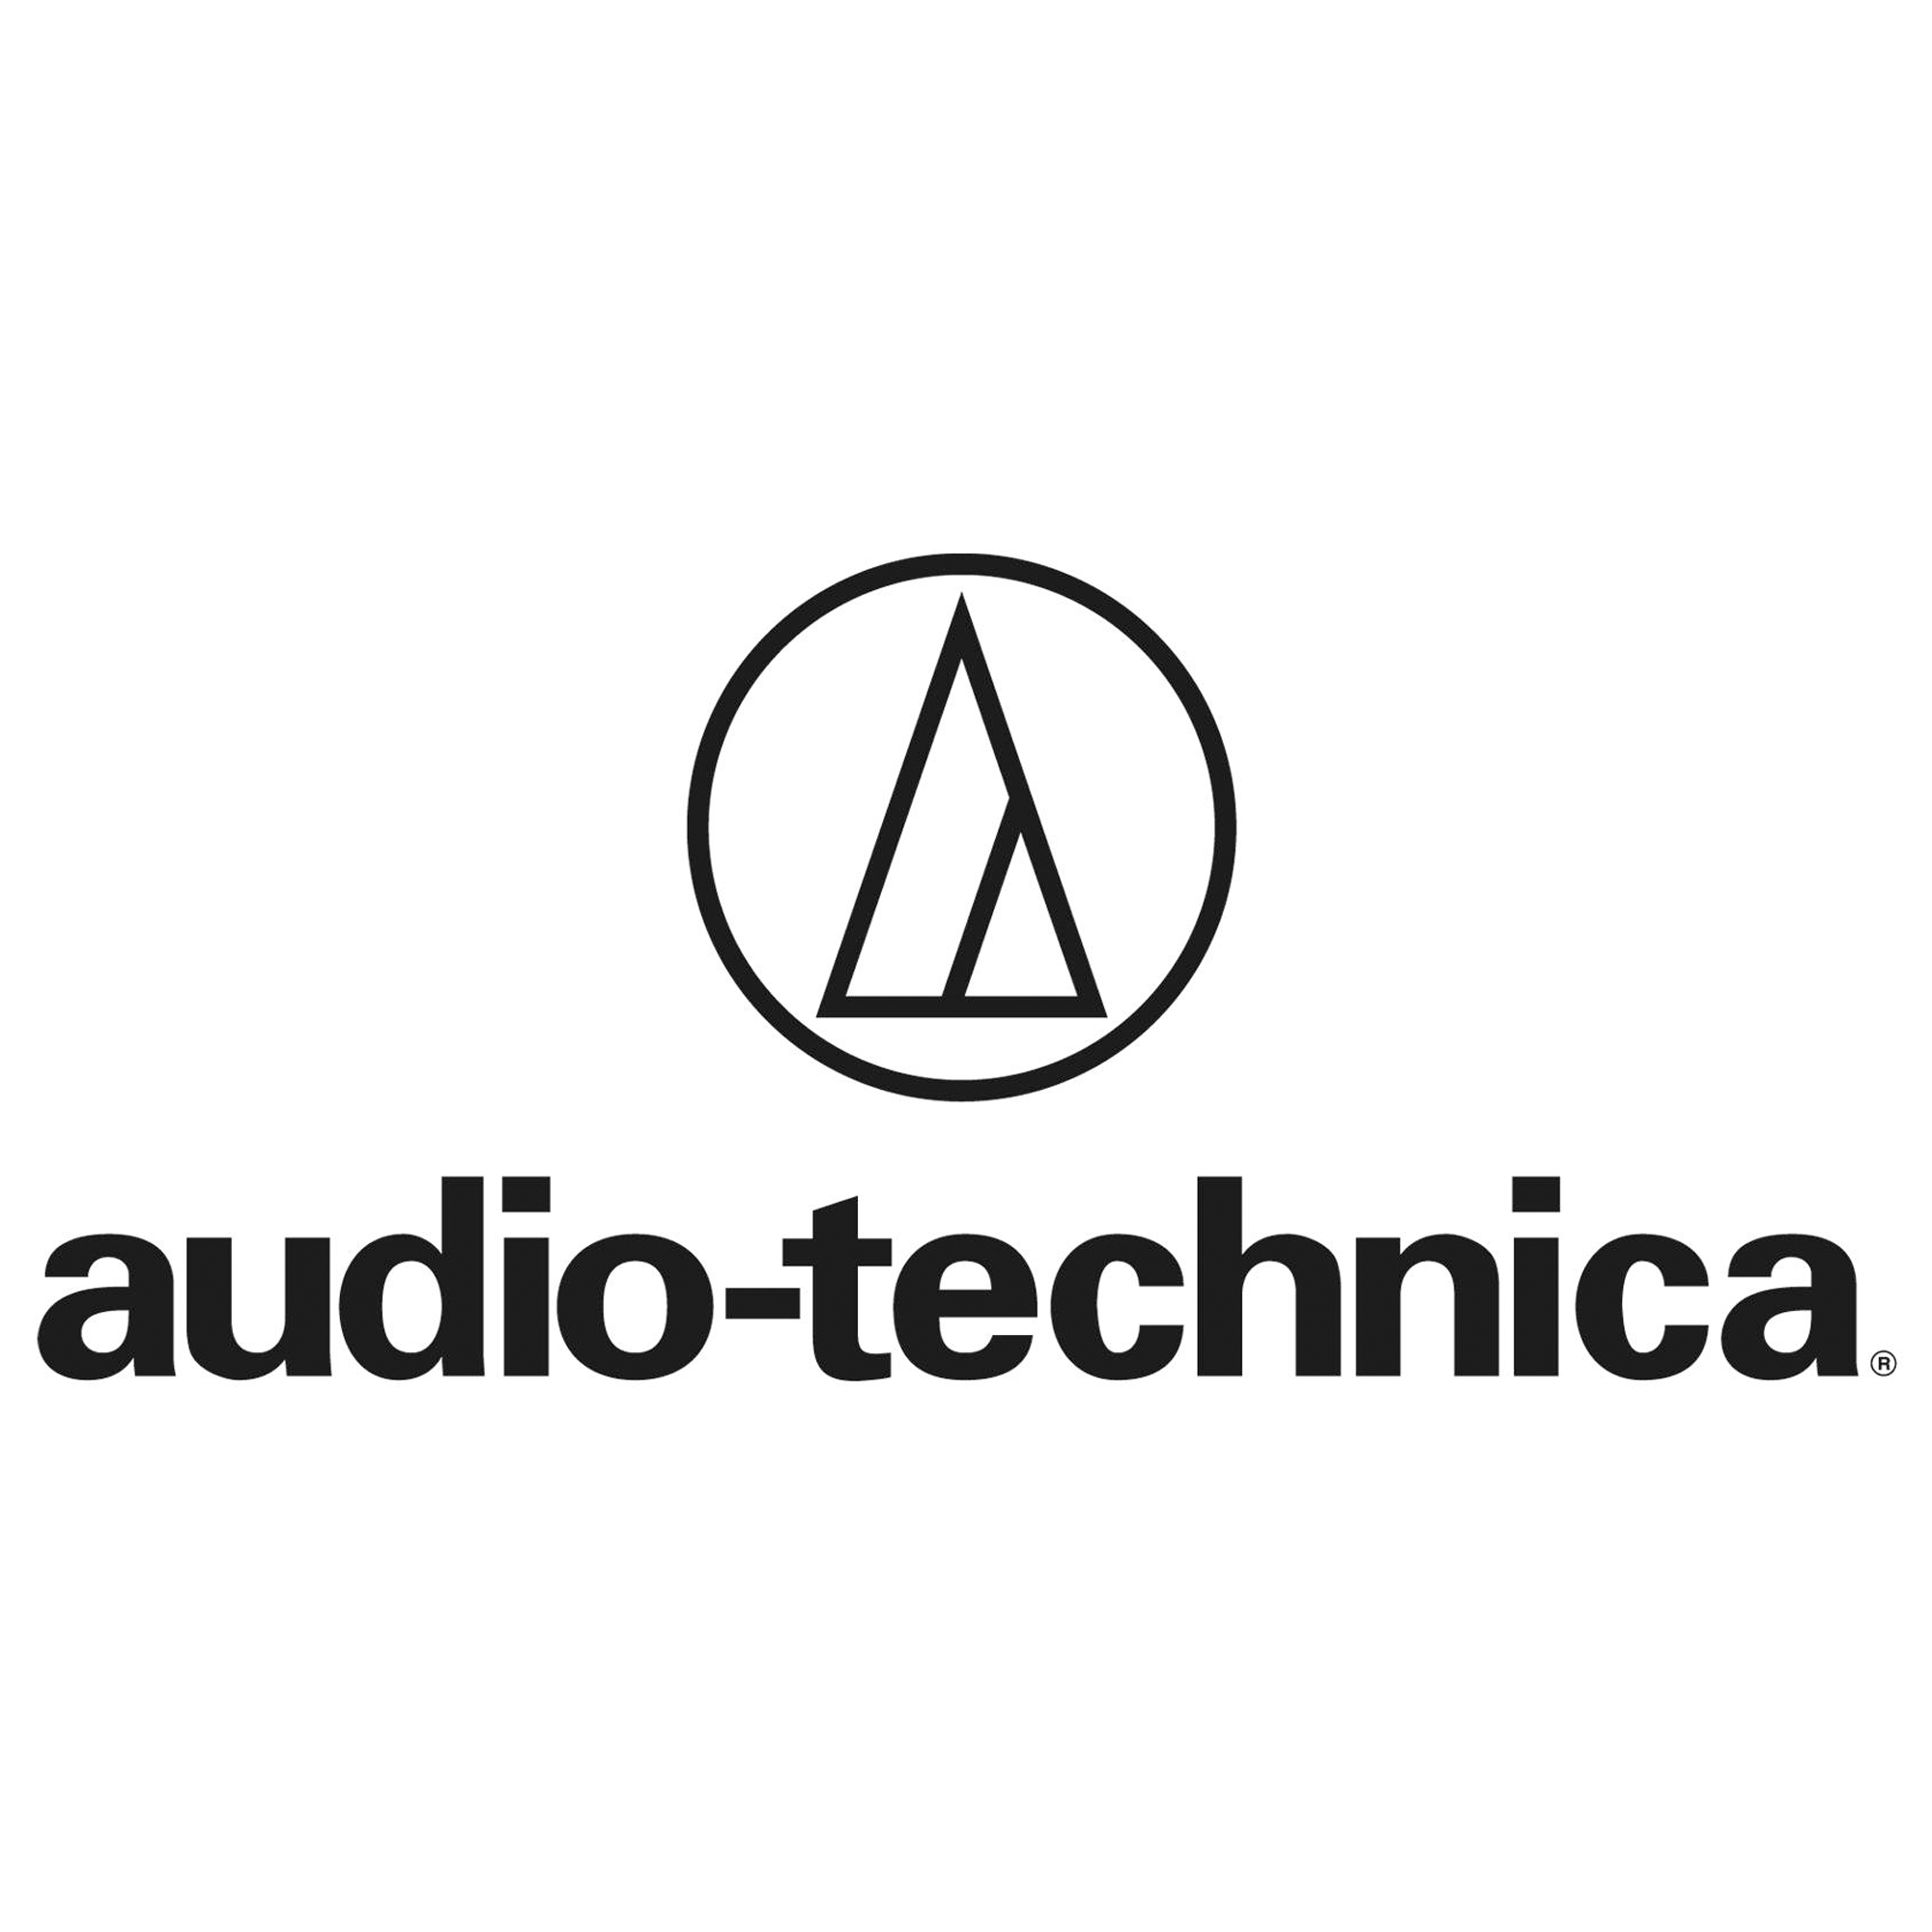 Audio-Technica AC50 Antenna Cable